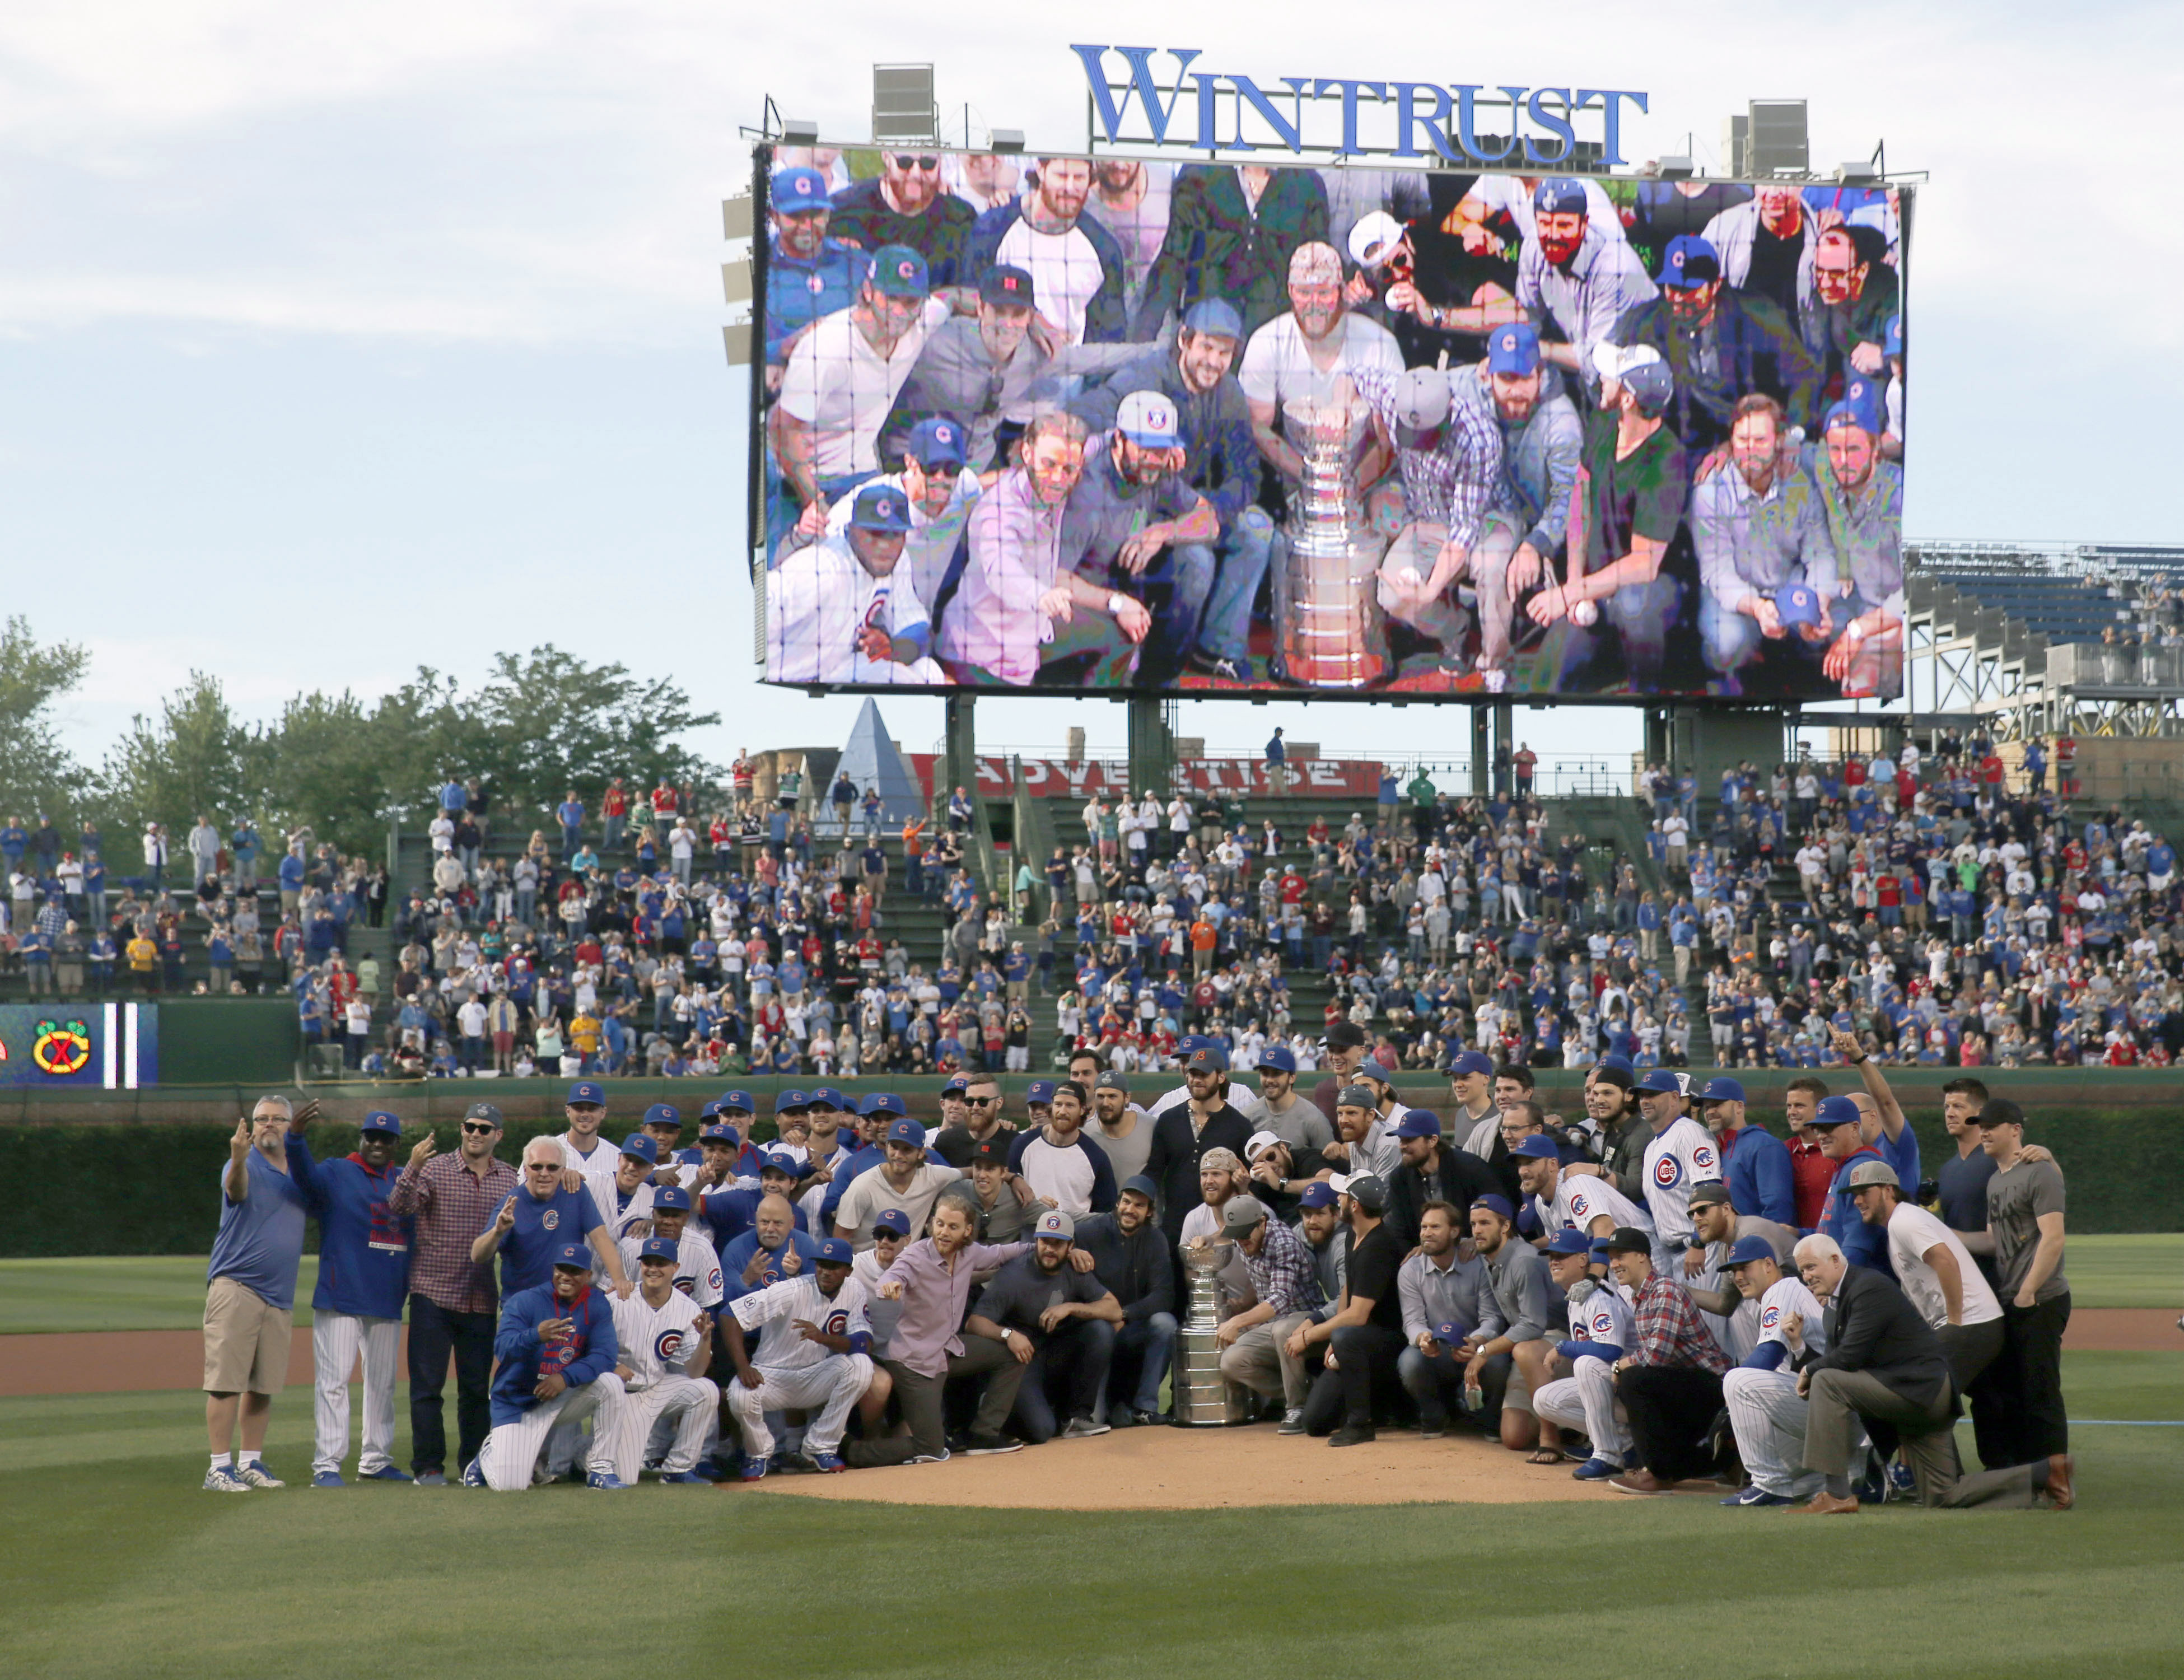 The Chicago Cubs and Blackhawks pose for a photo with the Stanley Cup on the pitcher's mound before an interleague baseball game between the Cubs and Cleveland Indians Tuesday, June 16, 2015, in Chicago. (AP Photo/Charles Rex Arbogast)